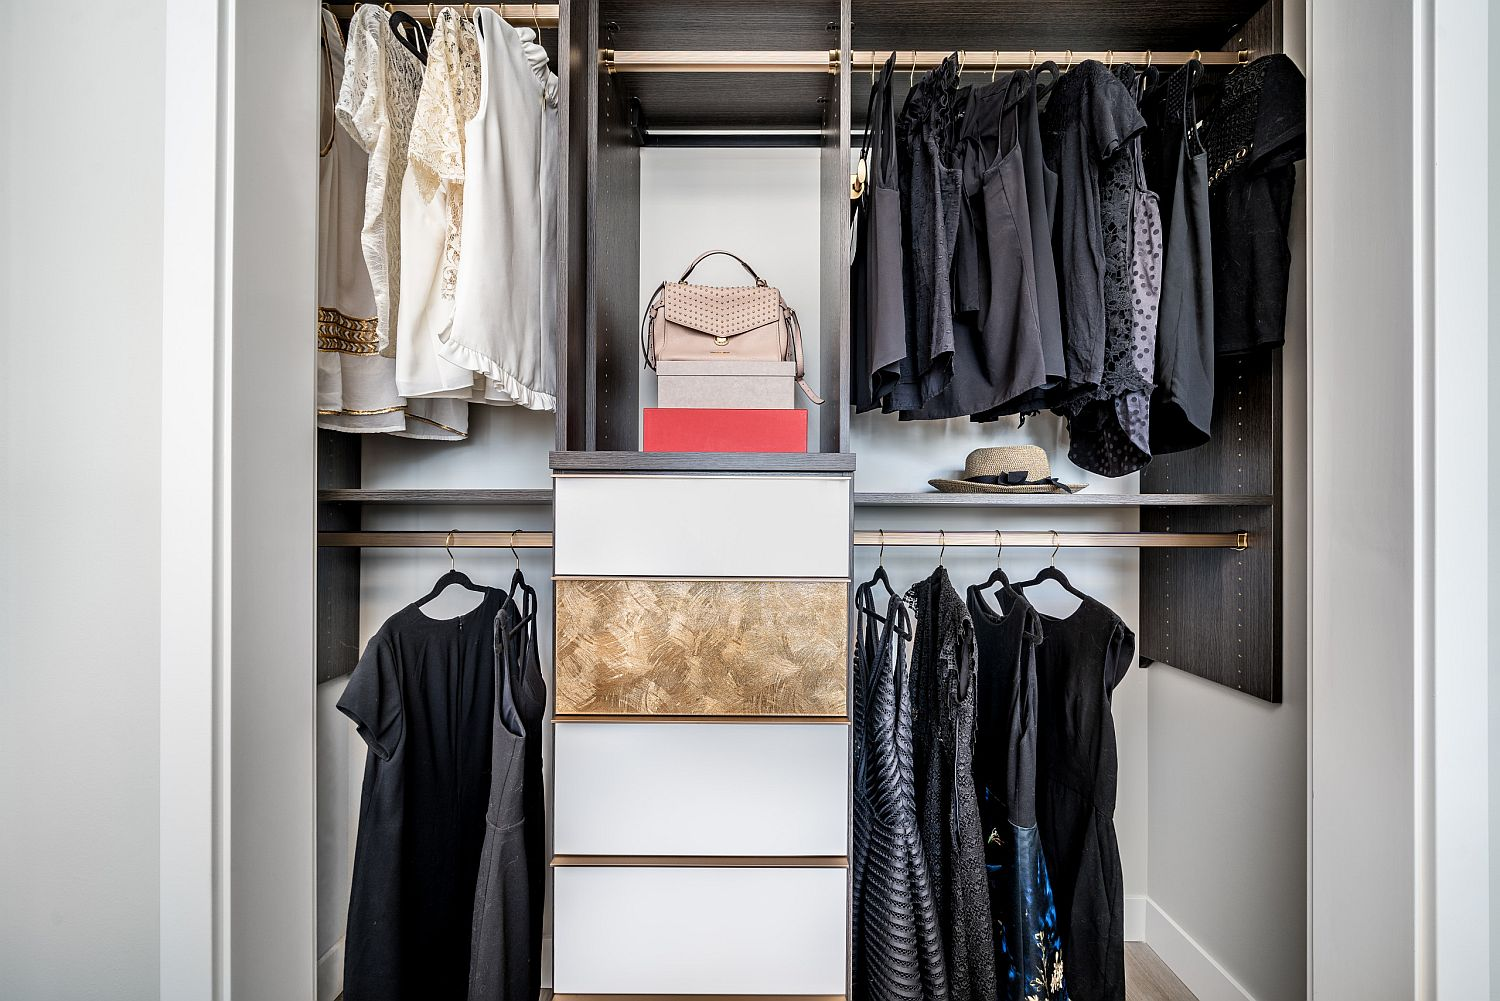 Simple and small closet is a showstopper